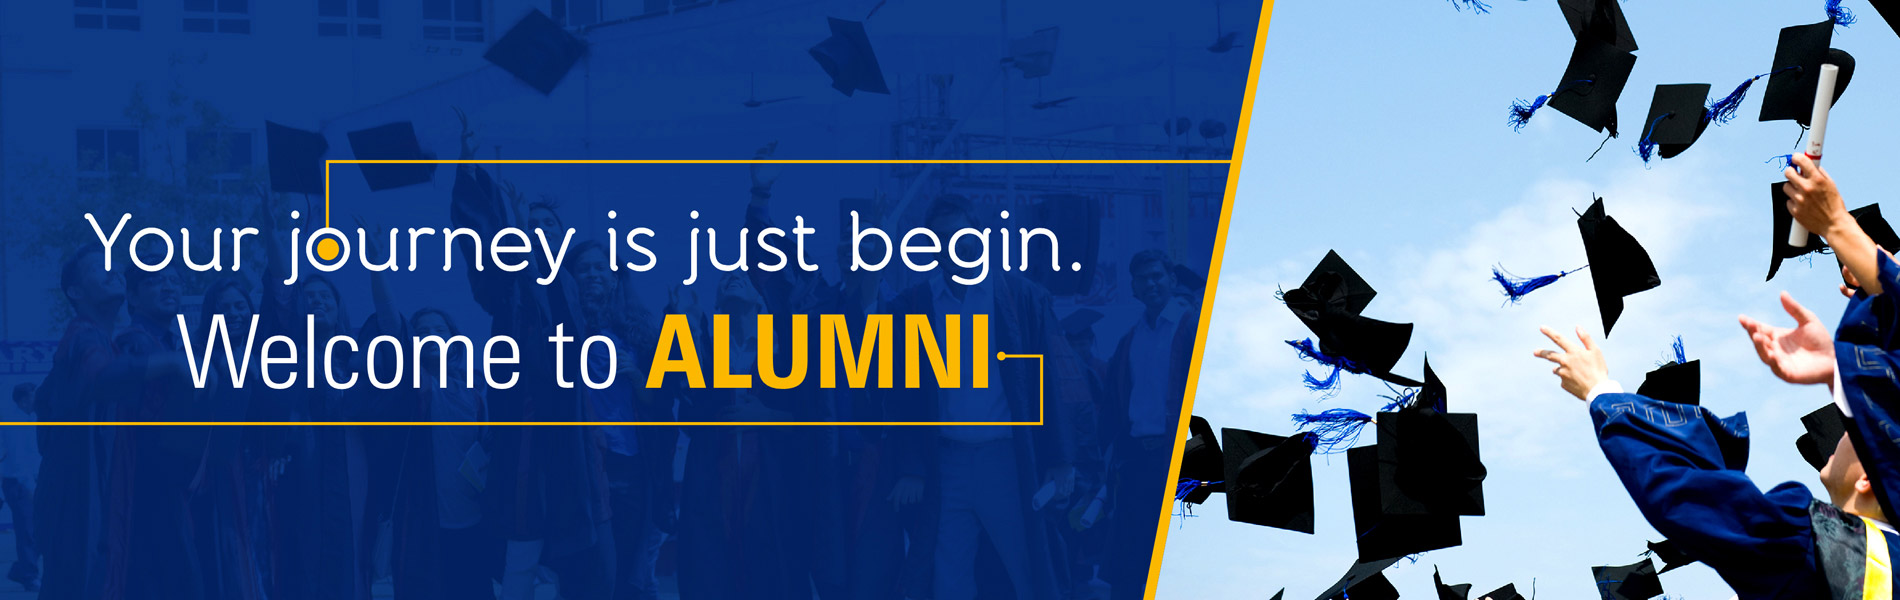 Alumni Registration - Arya College Jaipur 1st Old Campus